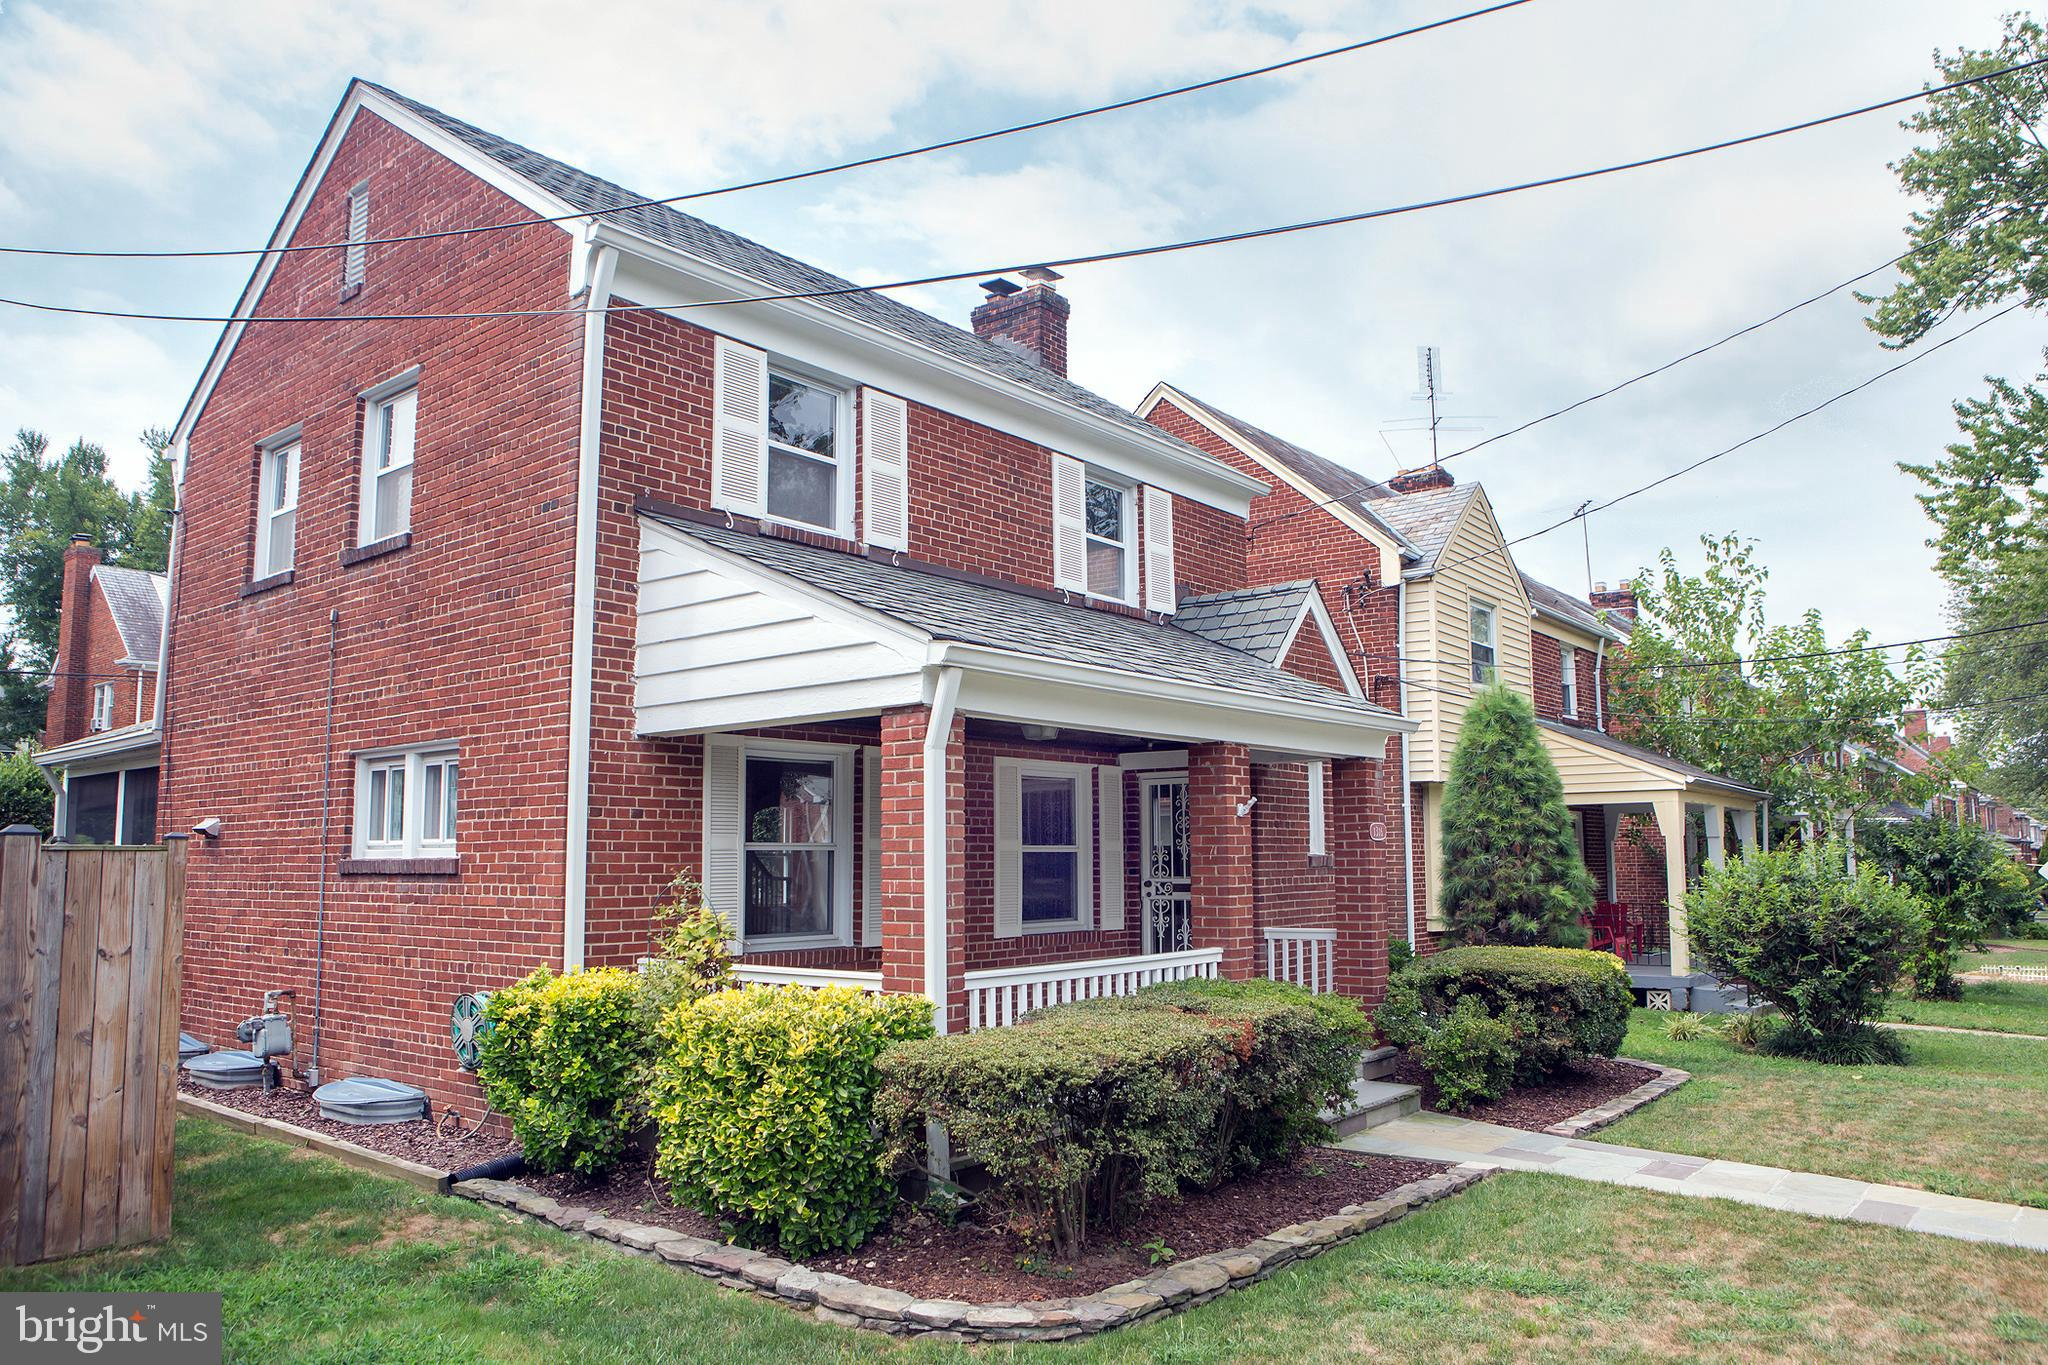 NEW LISTING! Solid Porch-front Colonial Starter Home in Booming Brightwood! Well maintained 3BR/1.5B